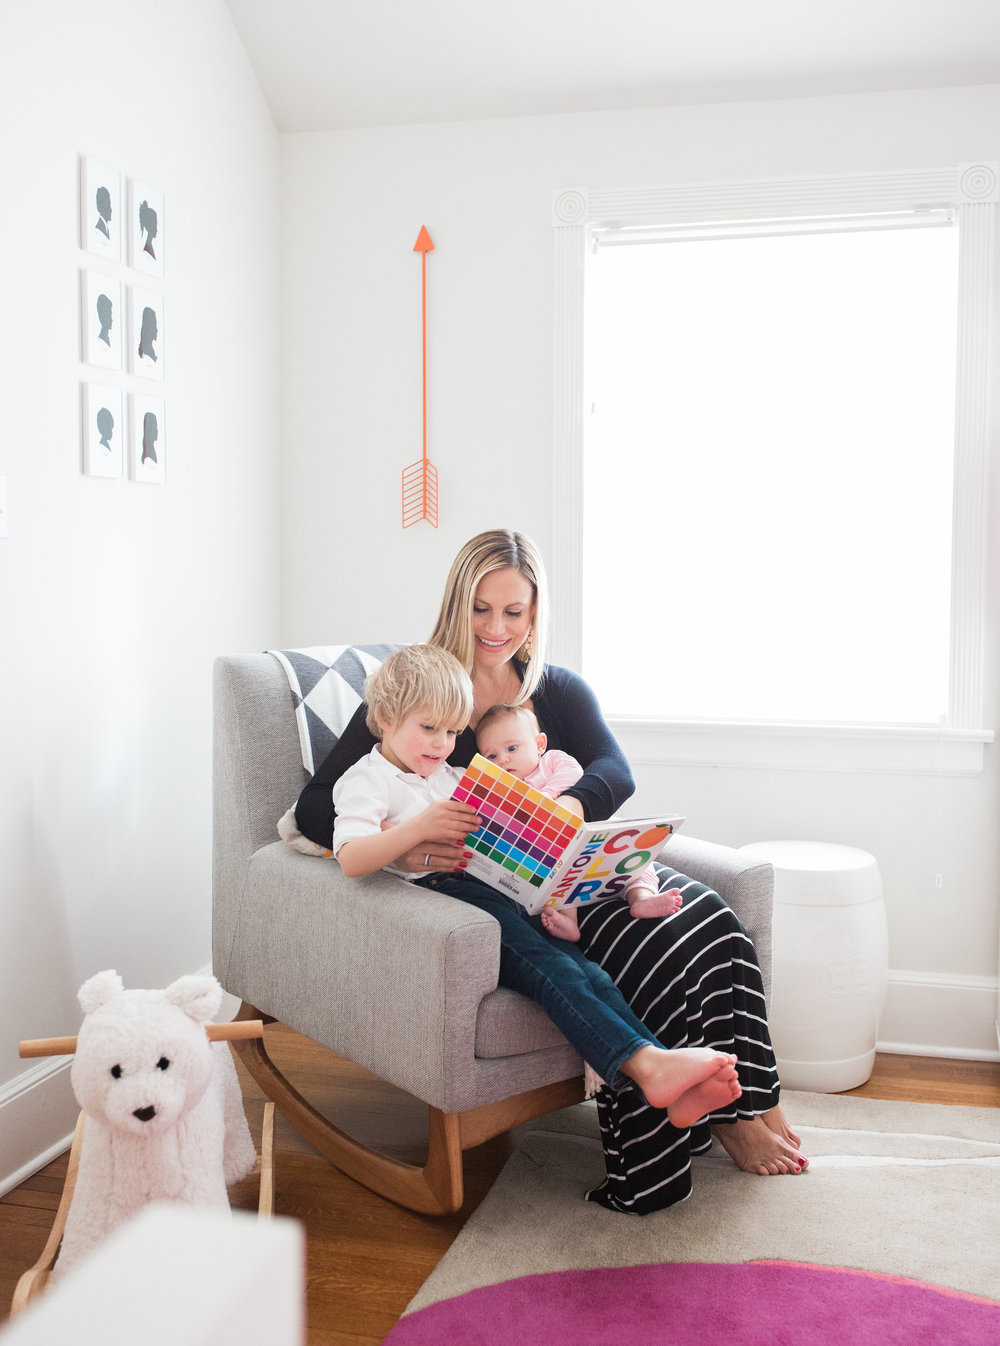 Ceci_Johnson_Newborn_Photo_Schoot_Ana_Schecter_Kids_Baby_Nursery_Design_Mom_Ceci_New_York.jpg